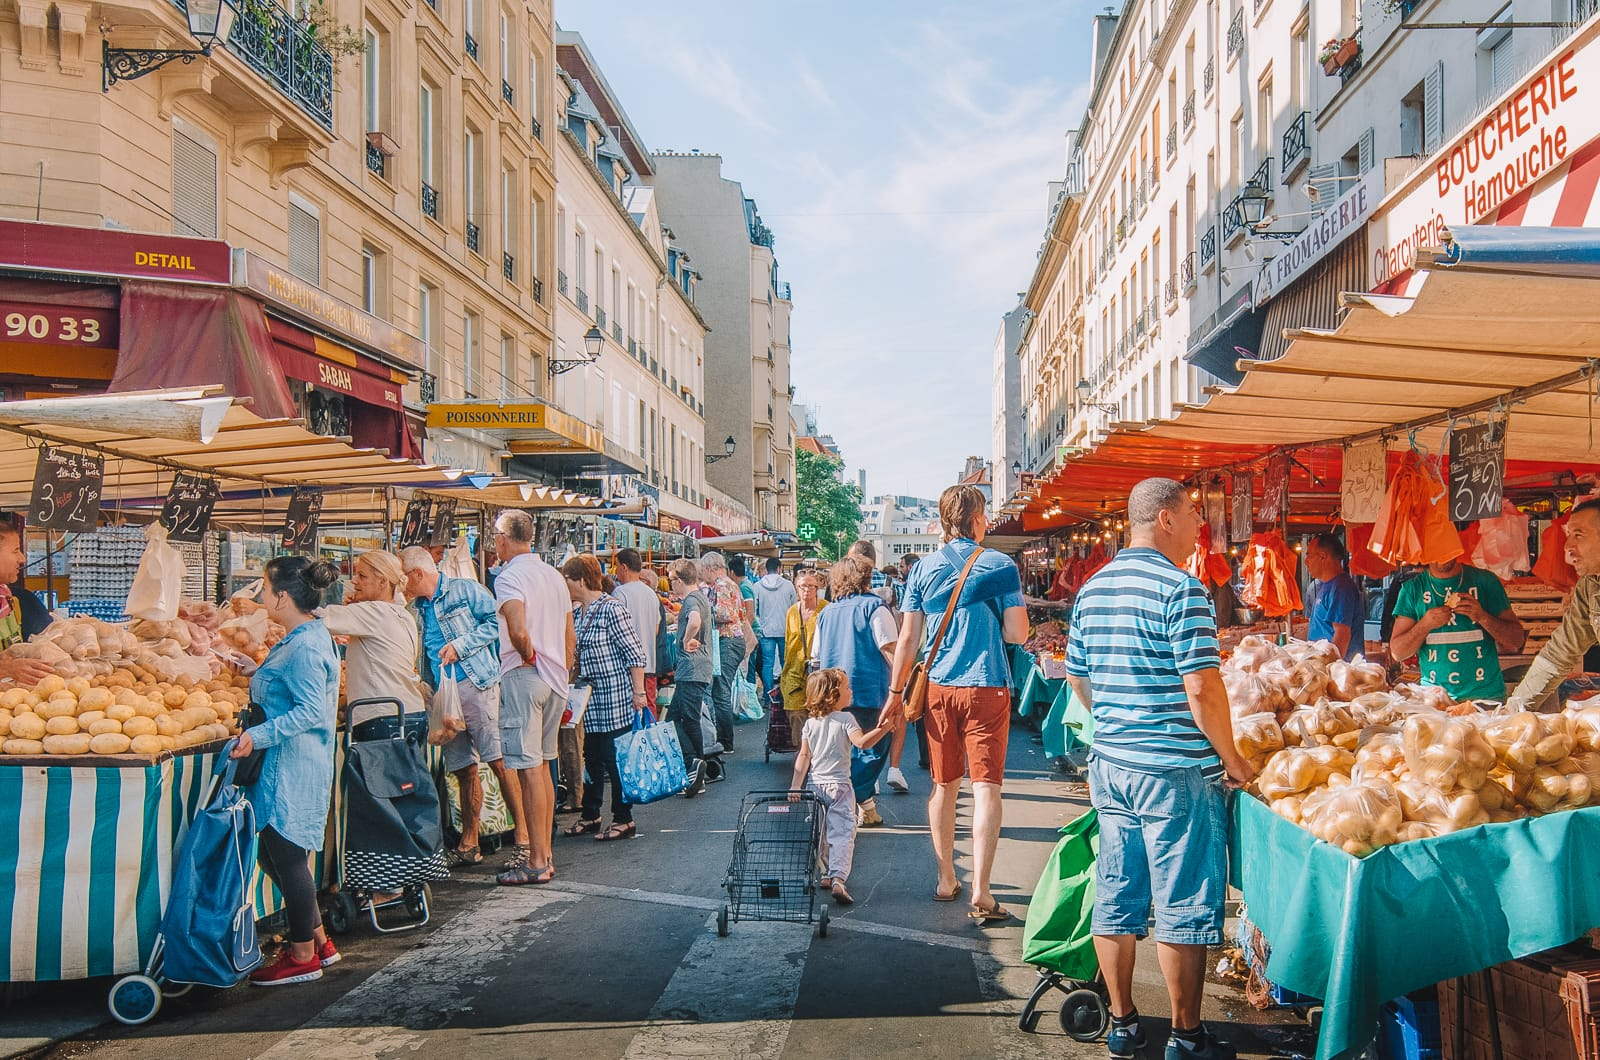 The 12 Best Markets In Paris You Have To Visit - Hand